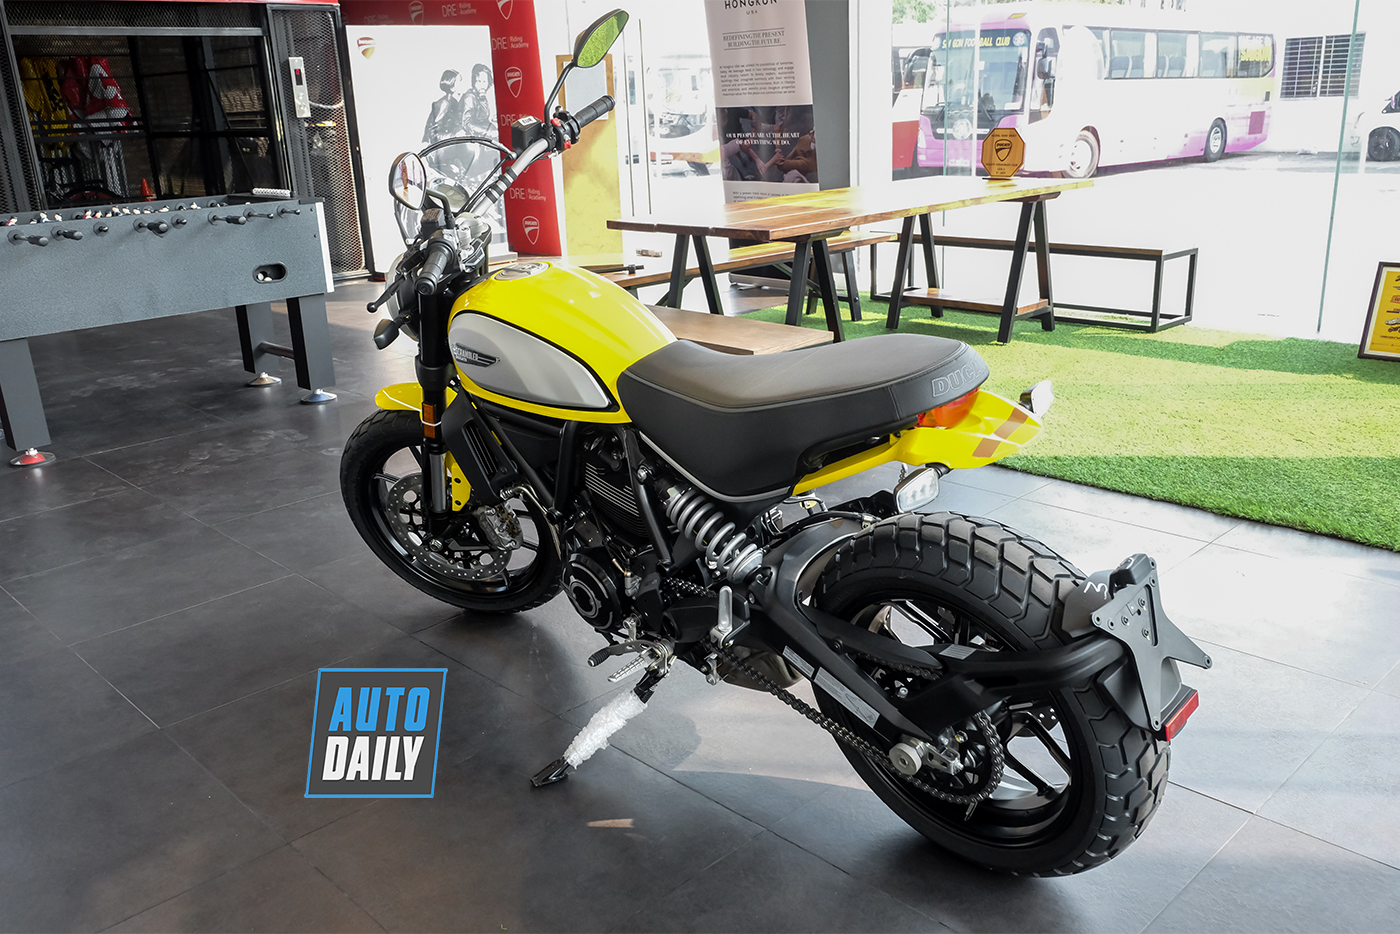 ducatin-scrambler-icon-2019-6.jpg